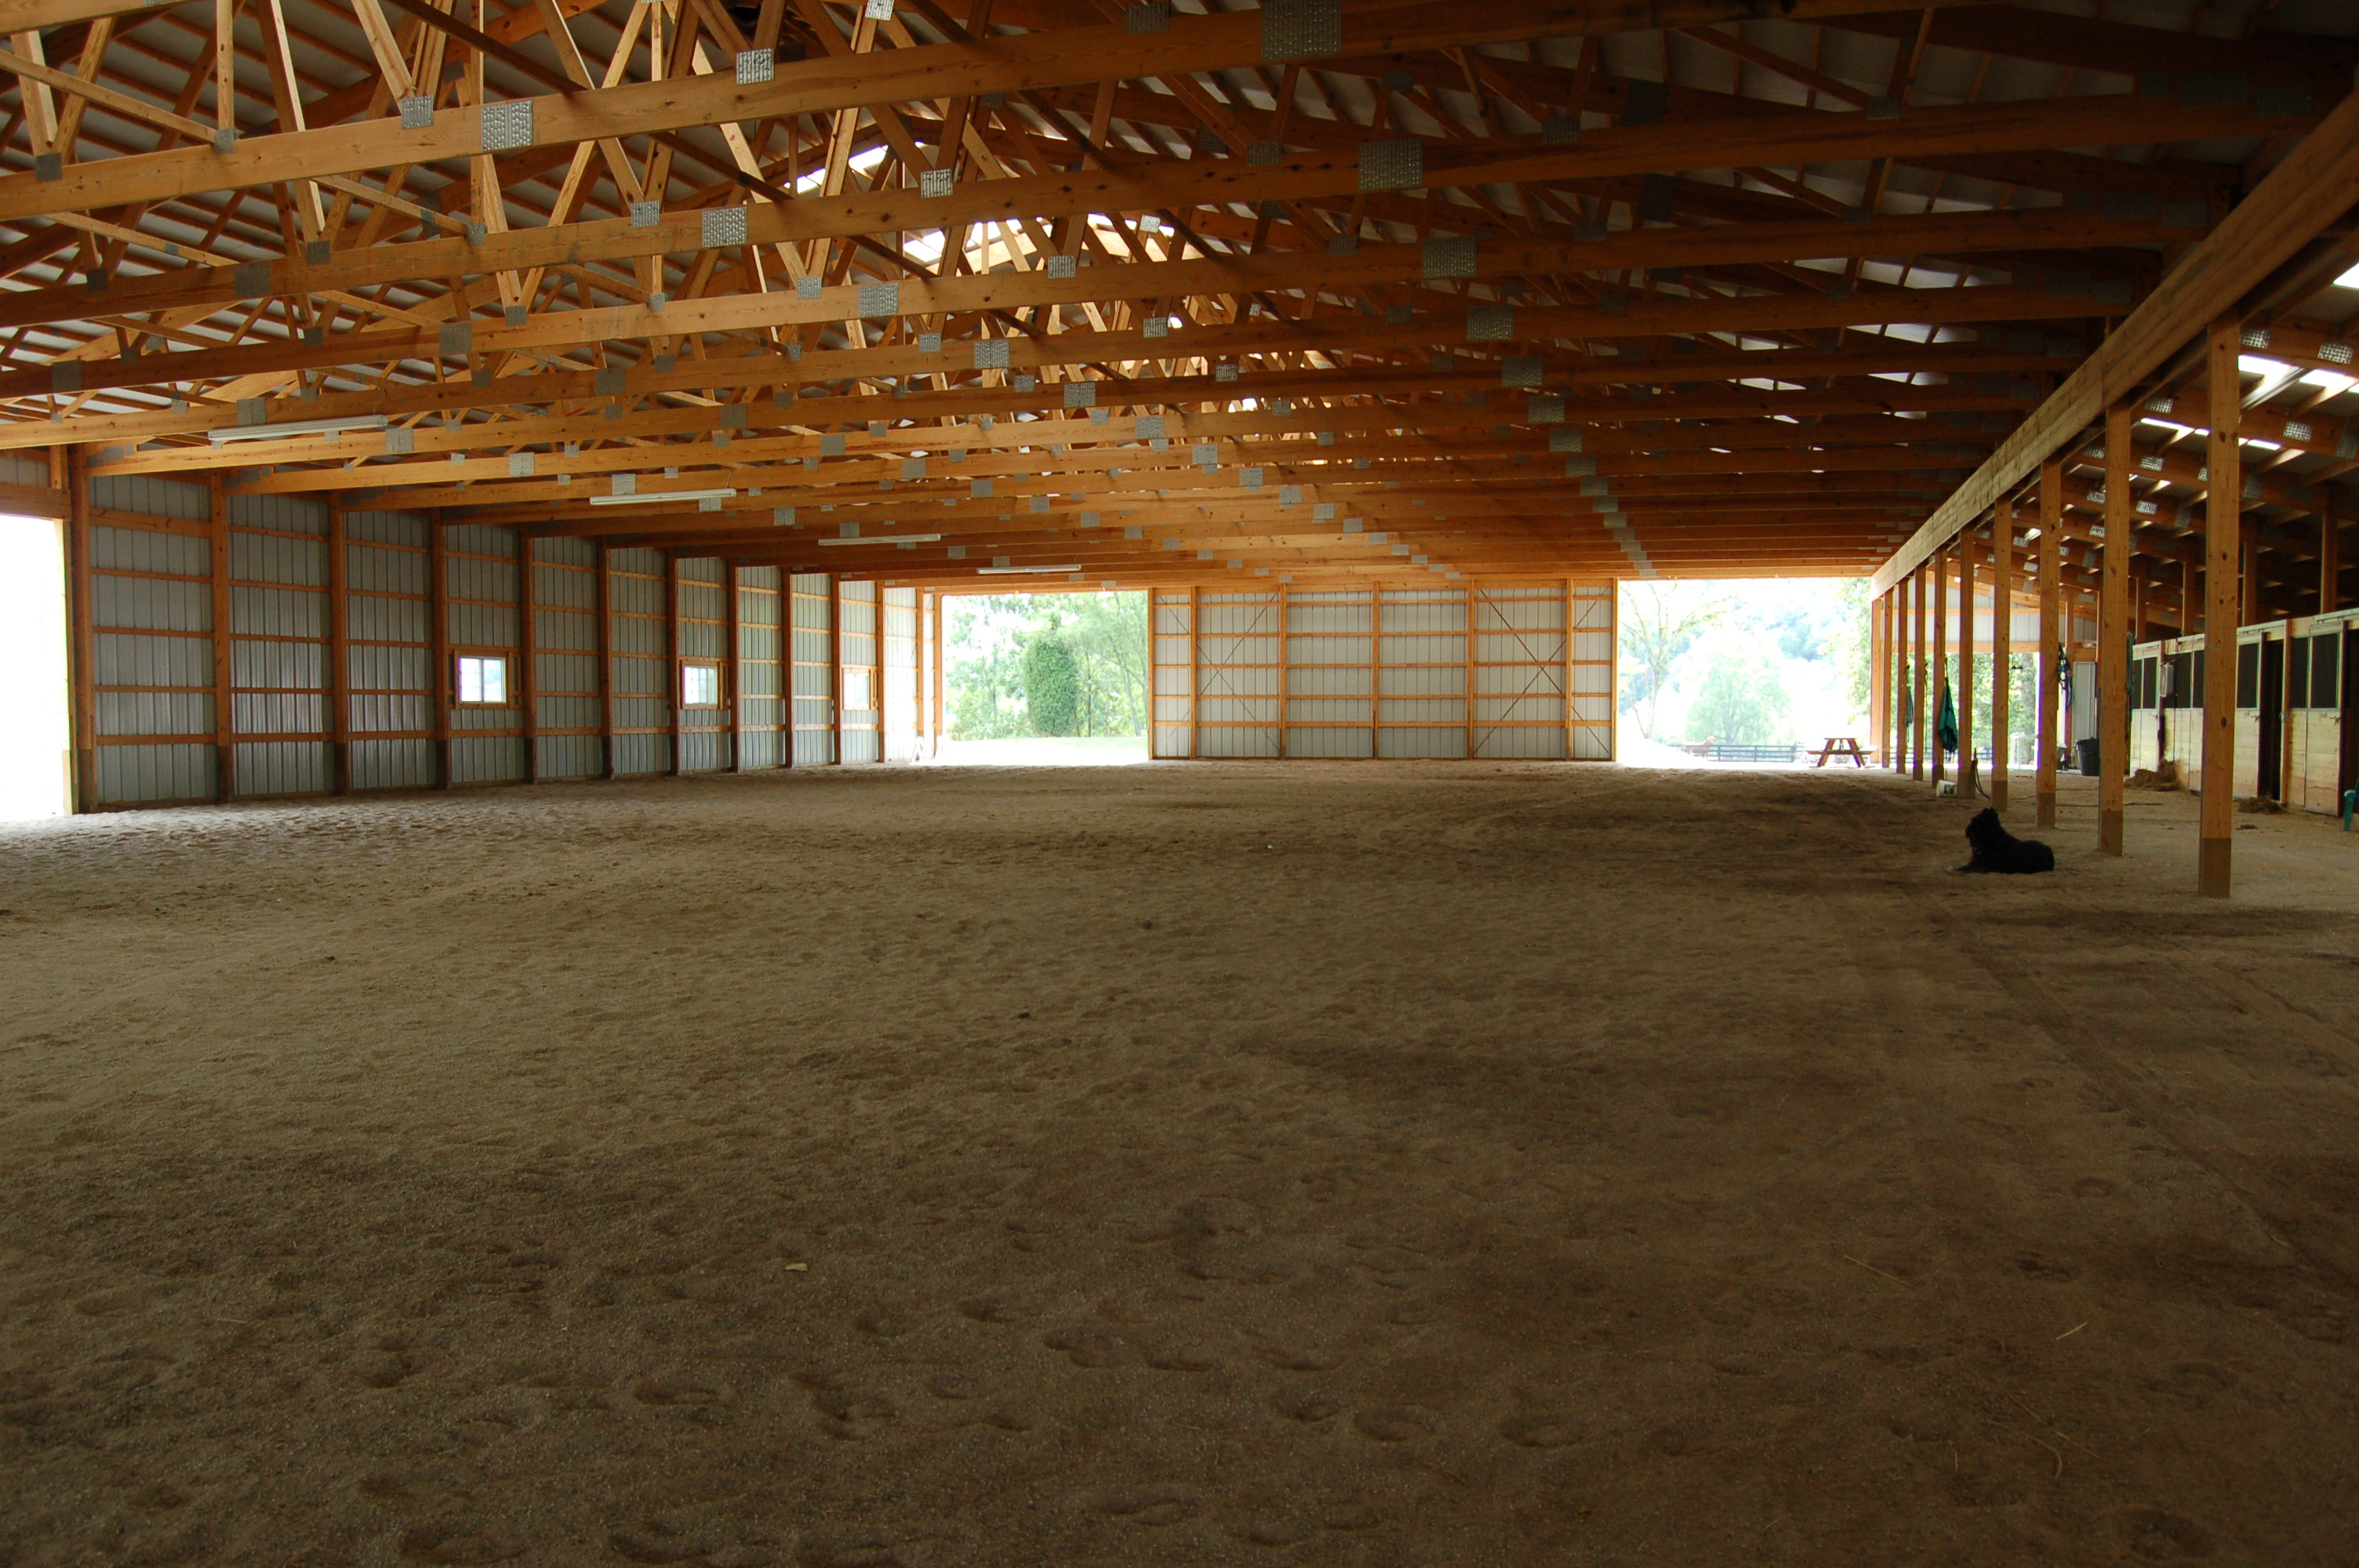 Inside the Indoor Arena